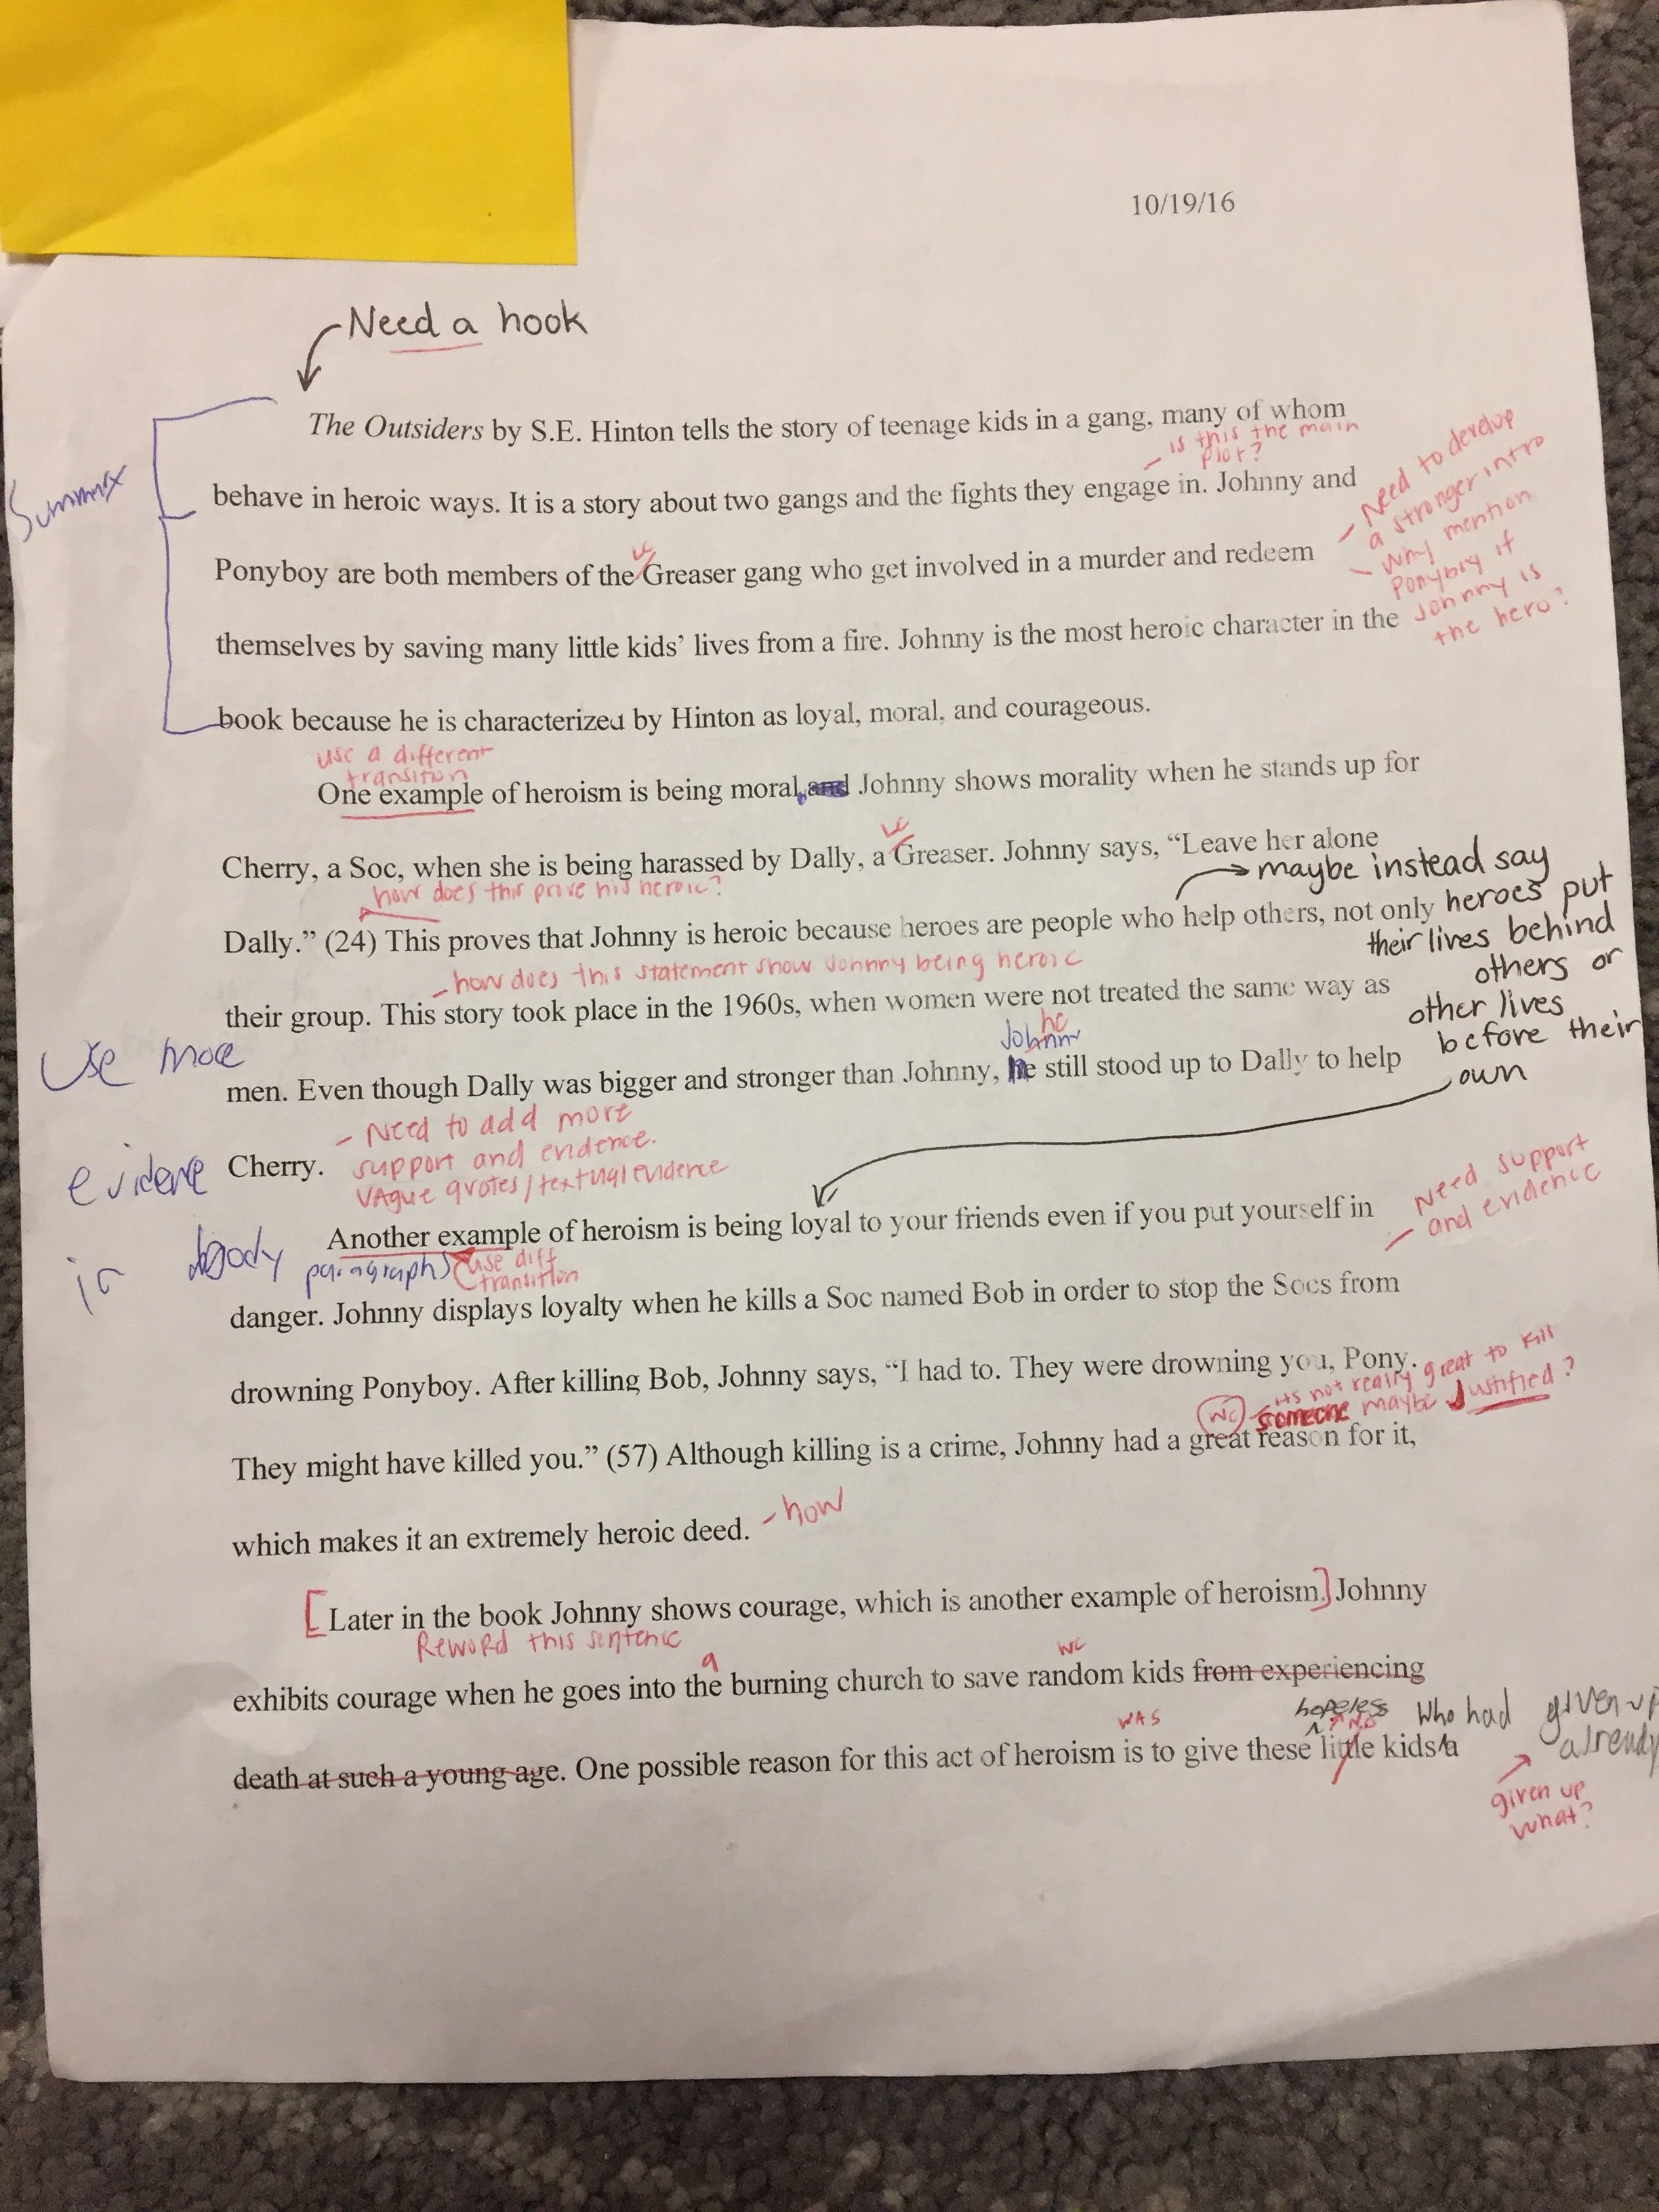 th grade english i provided feedback for students on their first draft and allowed them time during class and time at home to make the necessary revisions